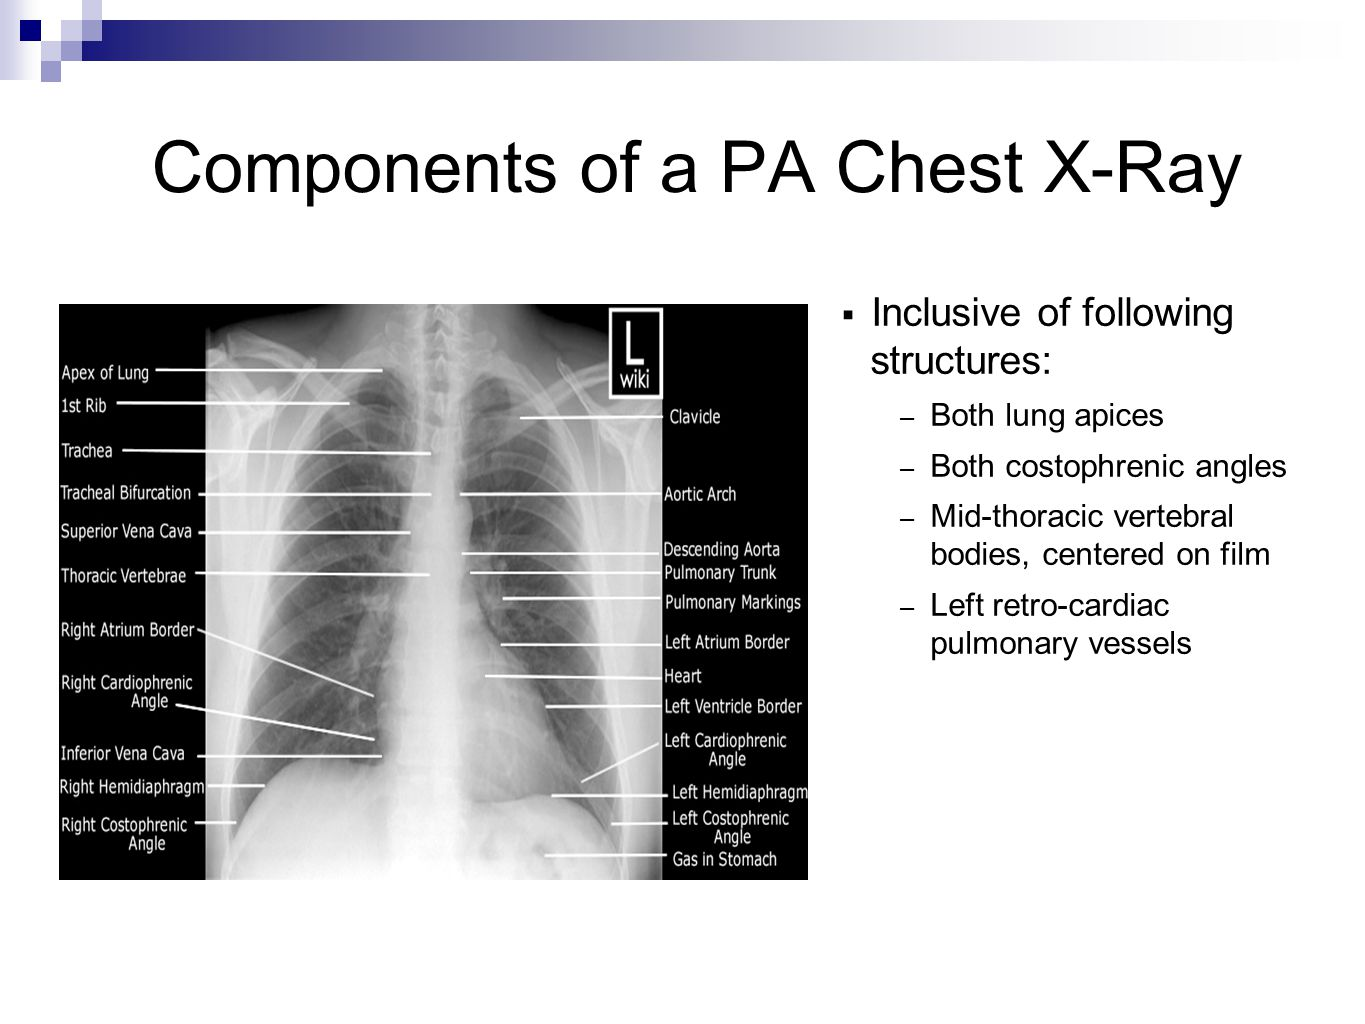 Components of a PA Chest X-Ray